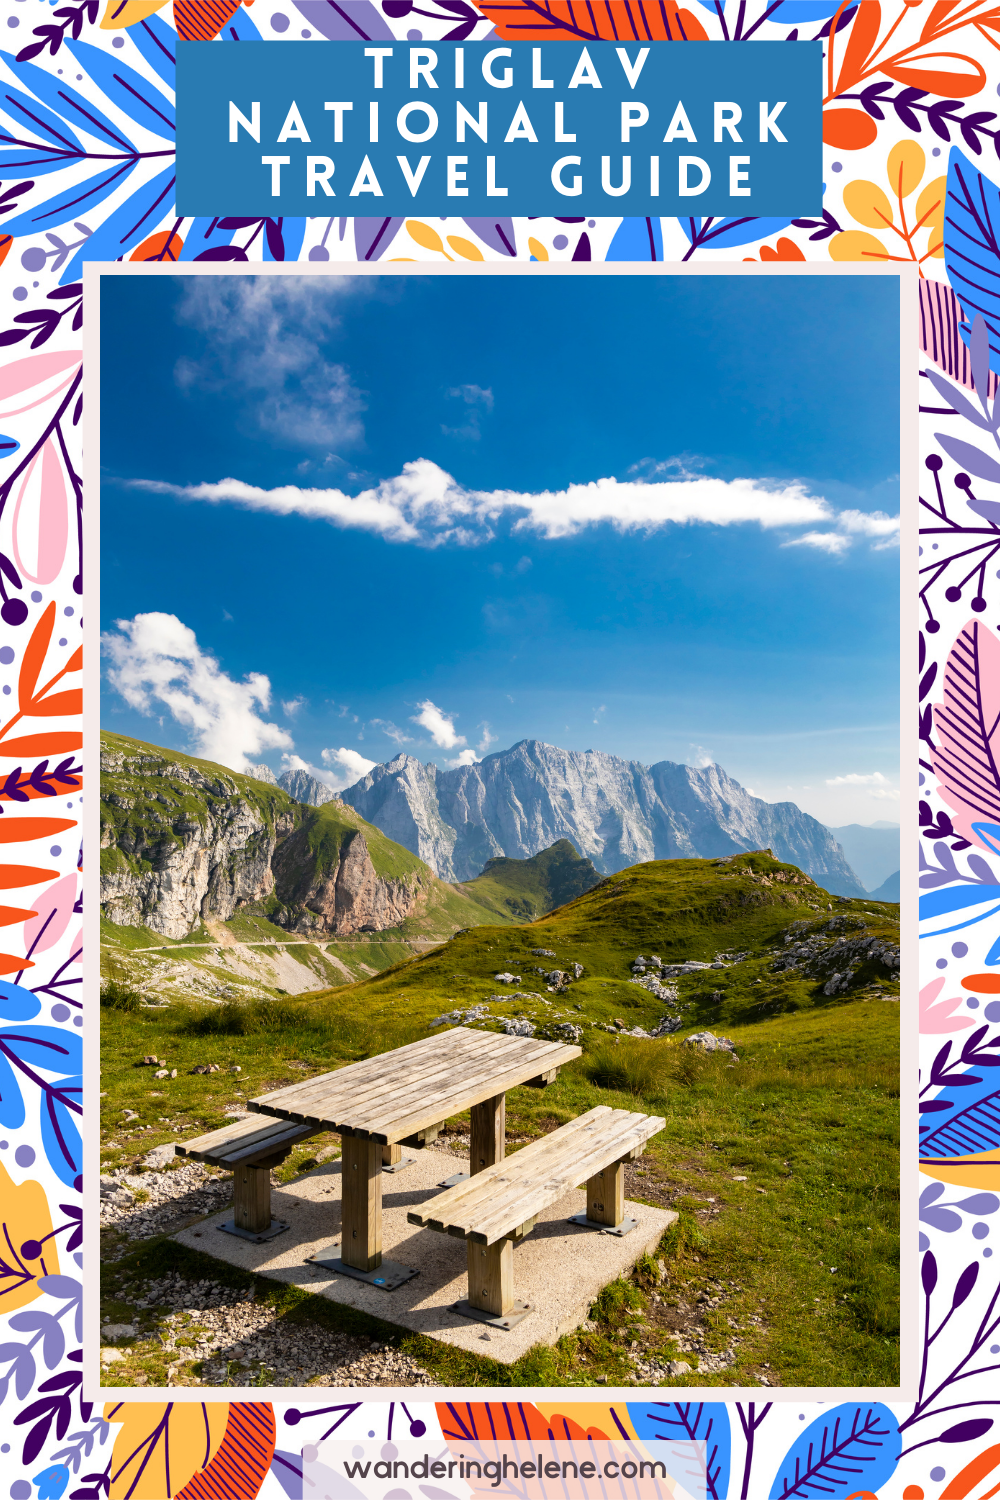 Pinterest Pin for Triglav National Park